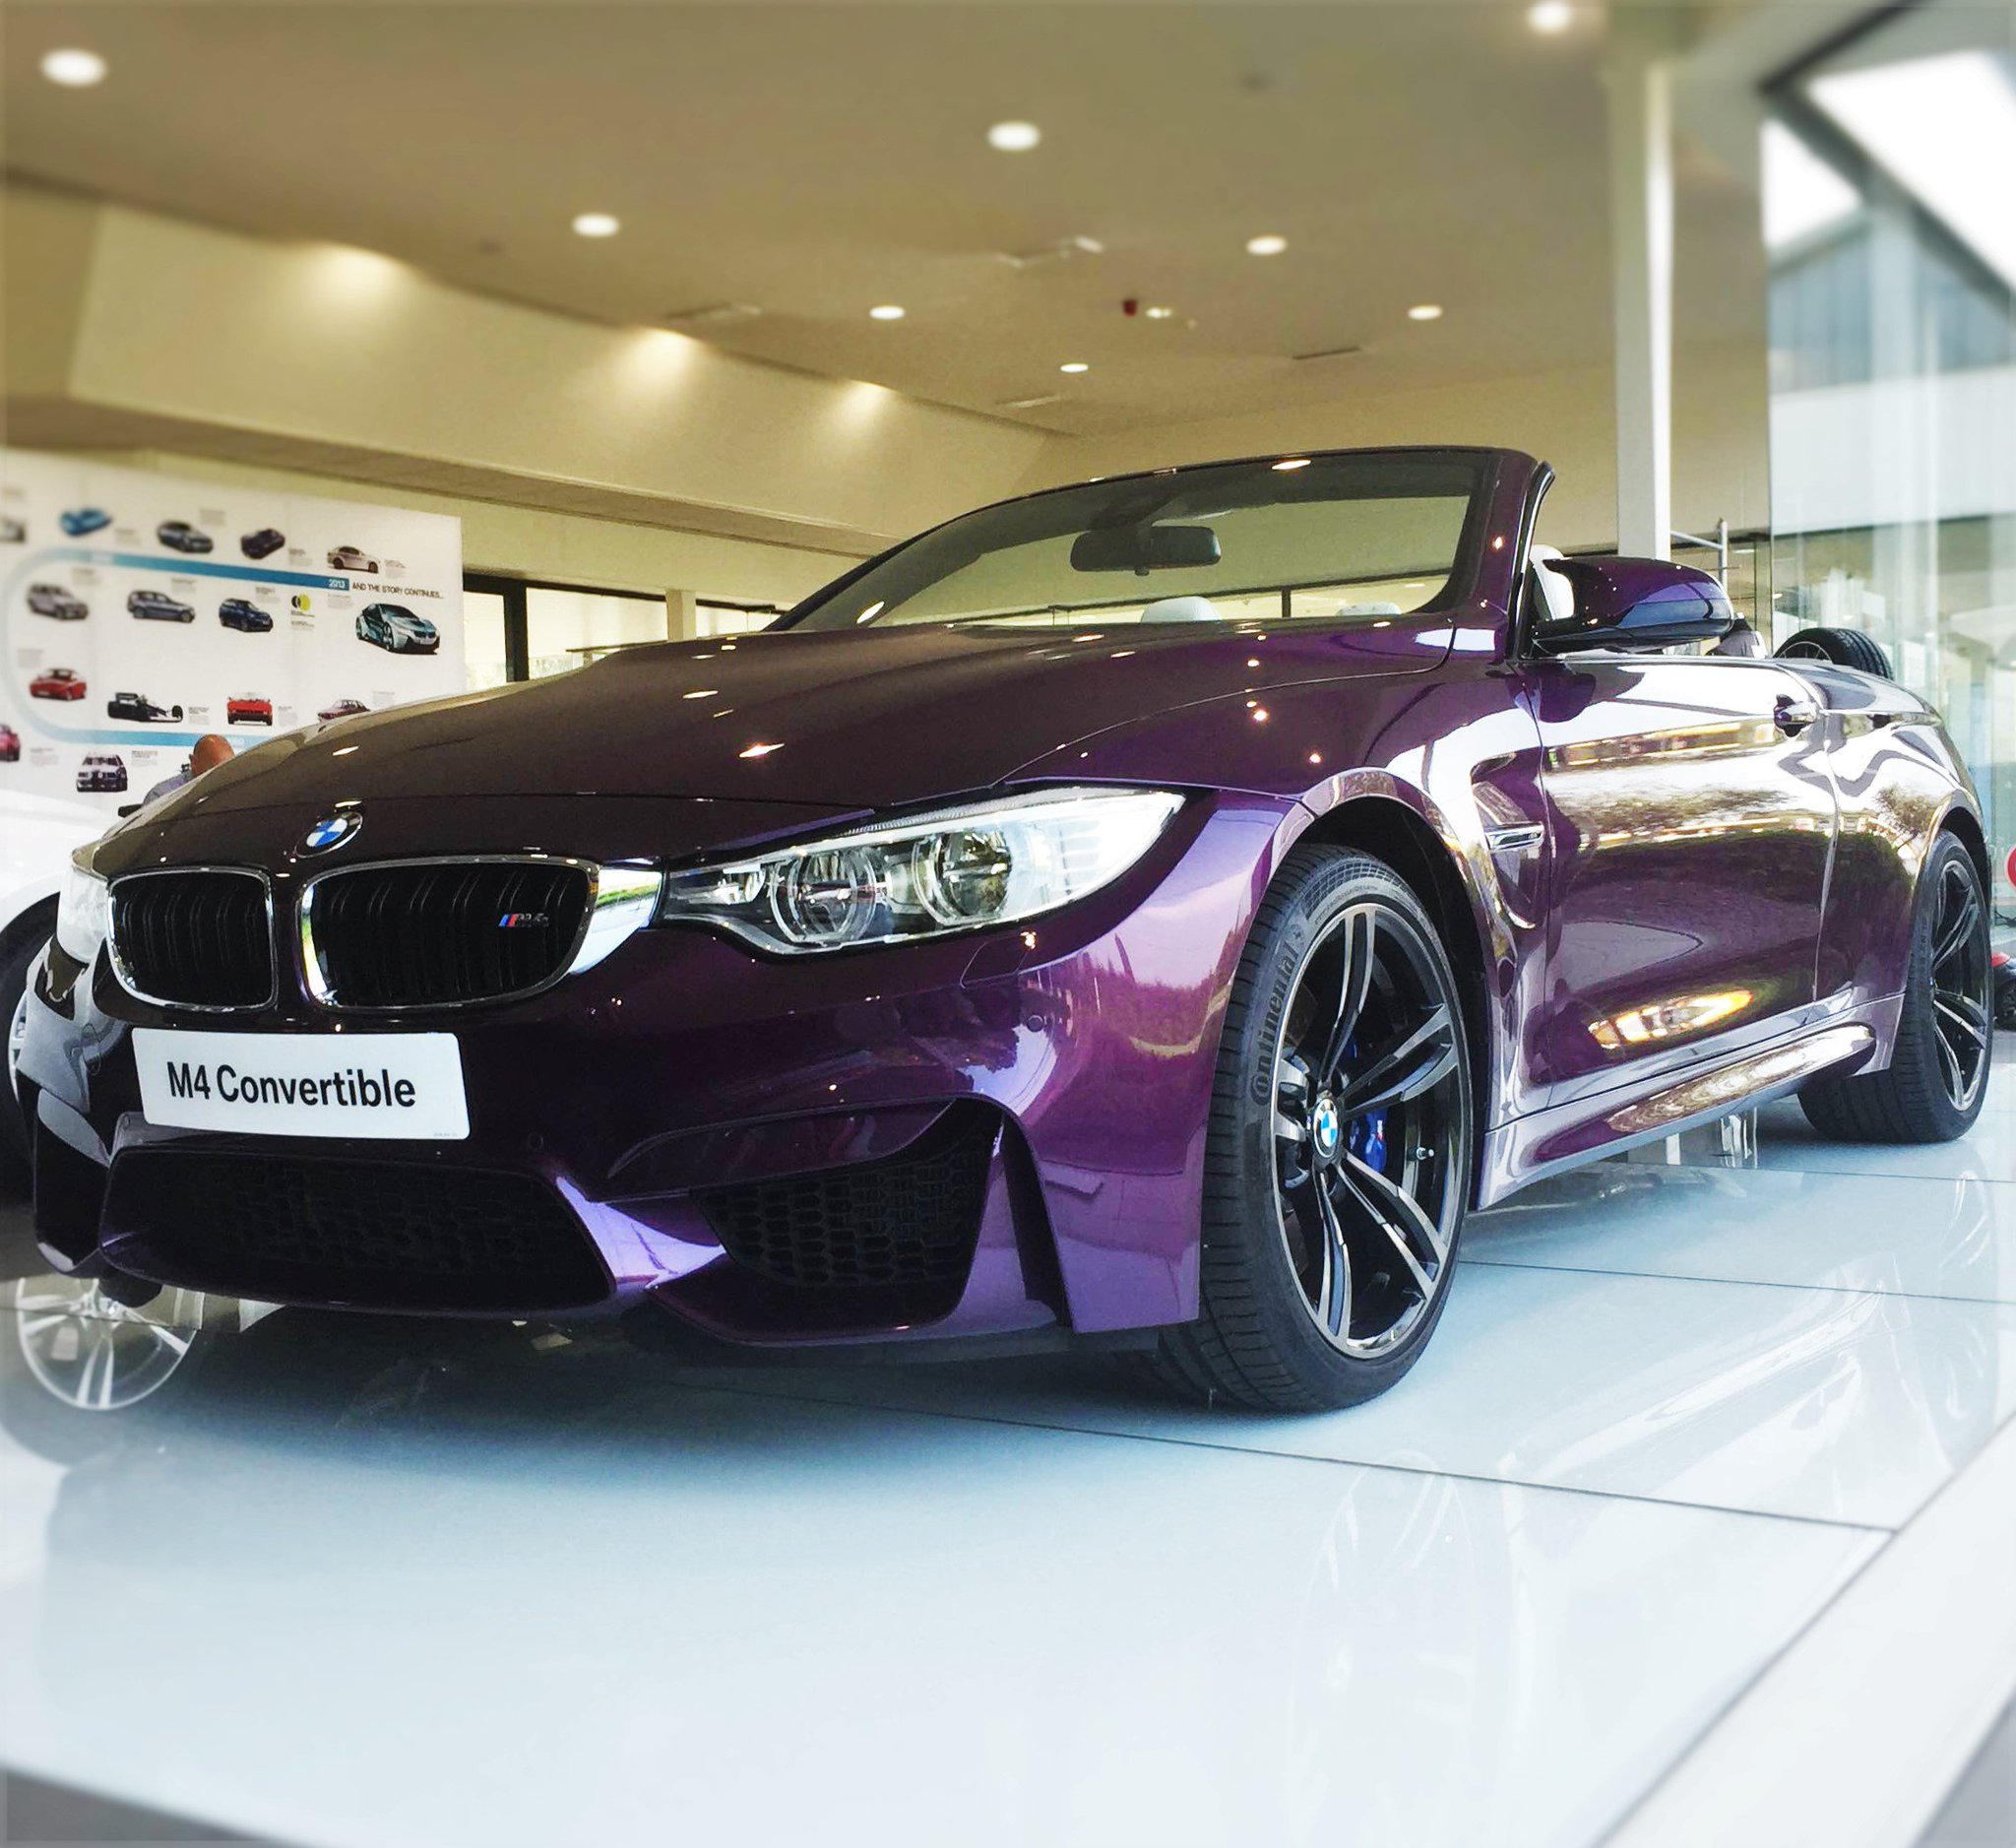 dick lovett on twitter check out this bmw m4 convertible. Black Bedroom Furniture Sets. Home Design Ideas